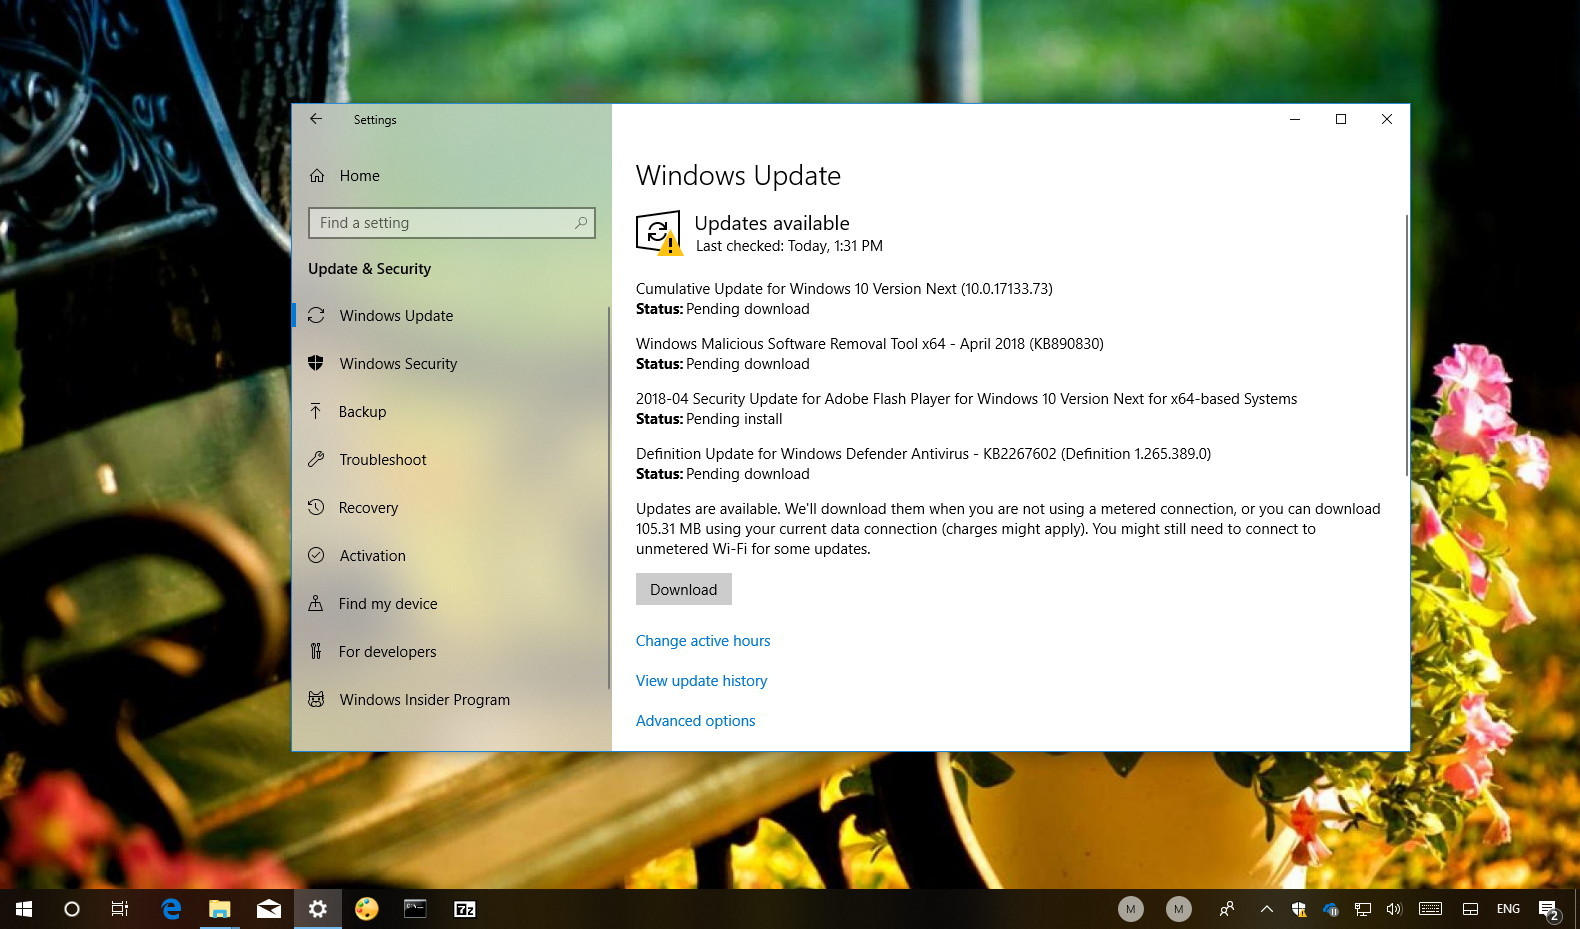 Windows 10 update KB4100375